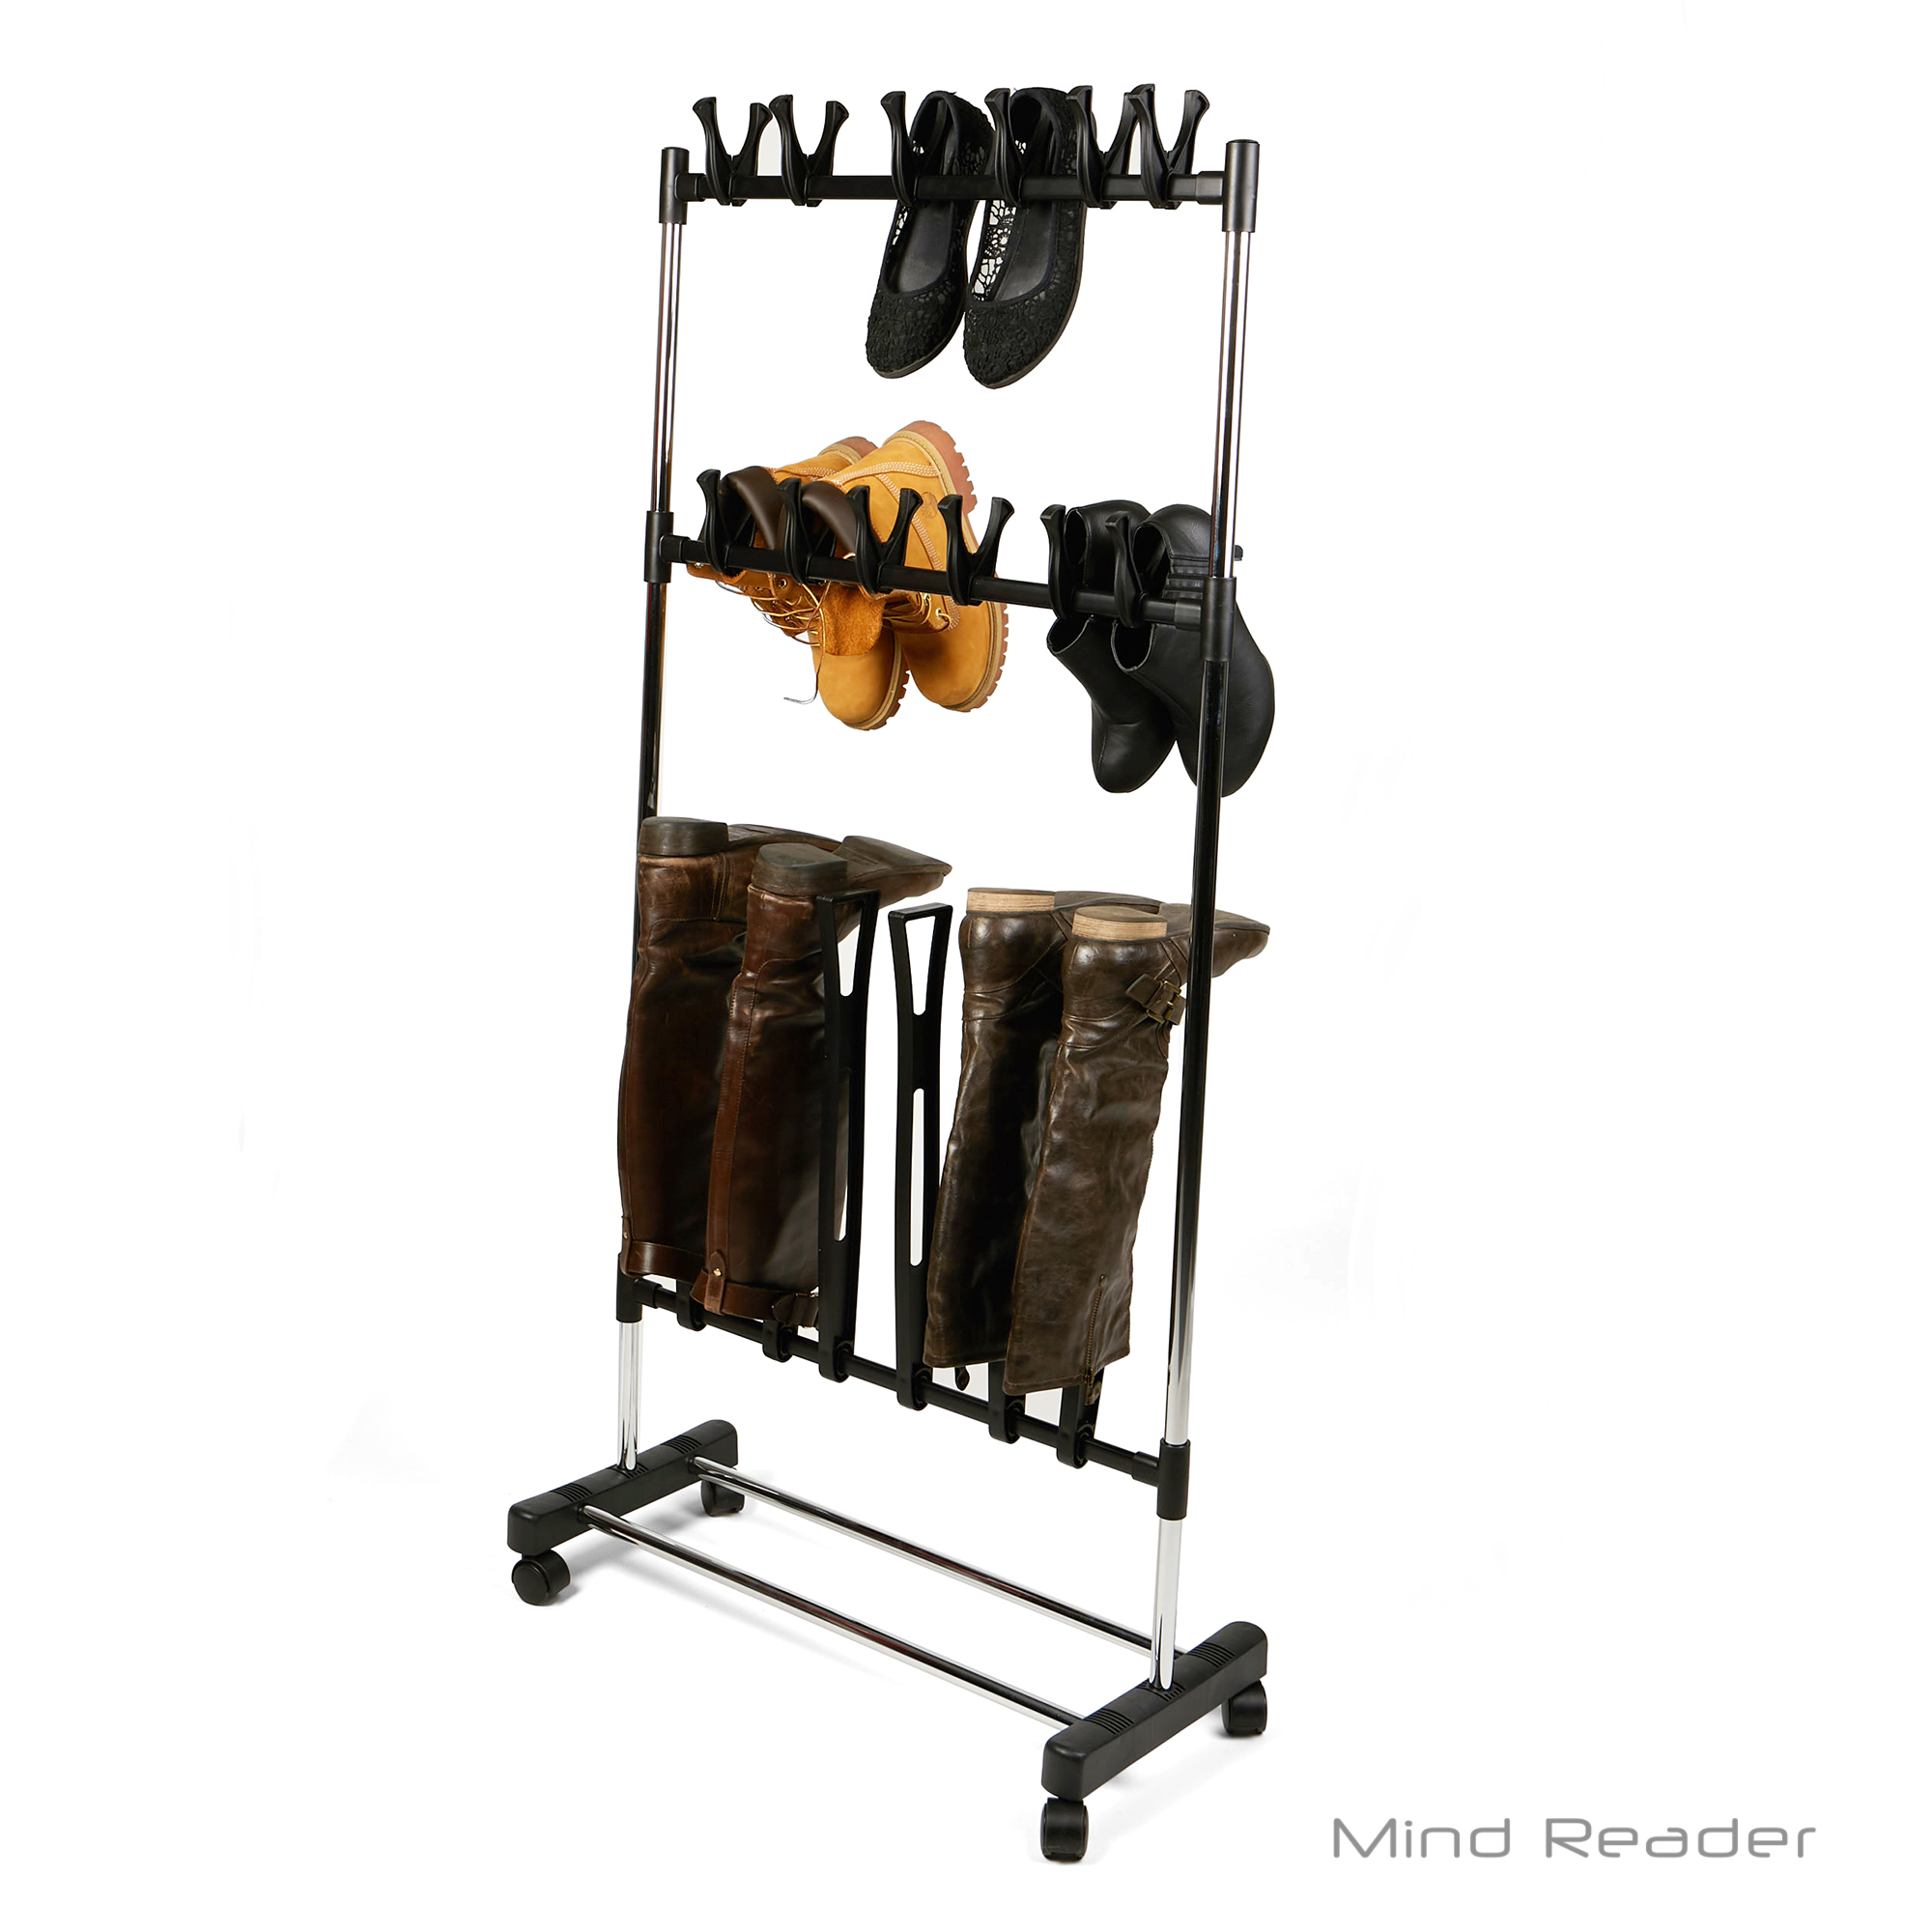 Mind Reader Shoe Rack Organizer, Boot Rack, Rolling Footwear Holder, Shoe Organizer Stand, Black